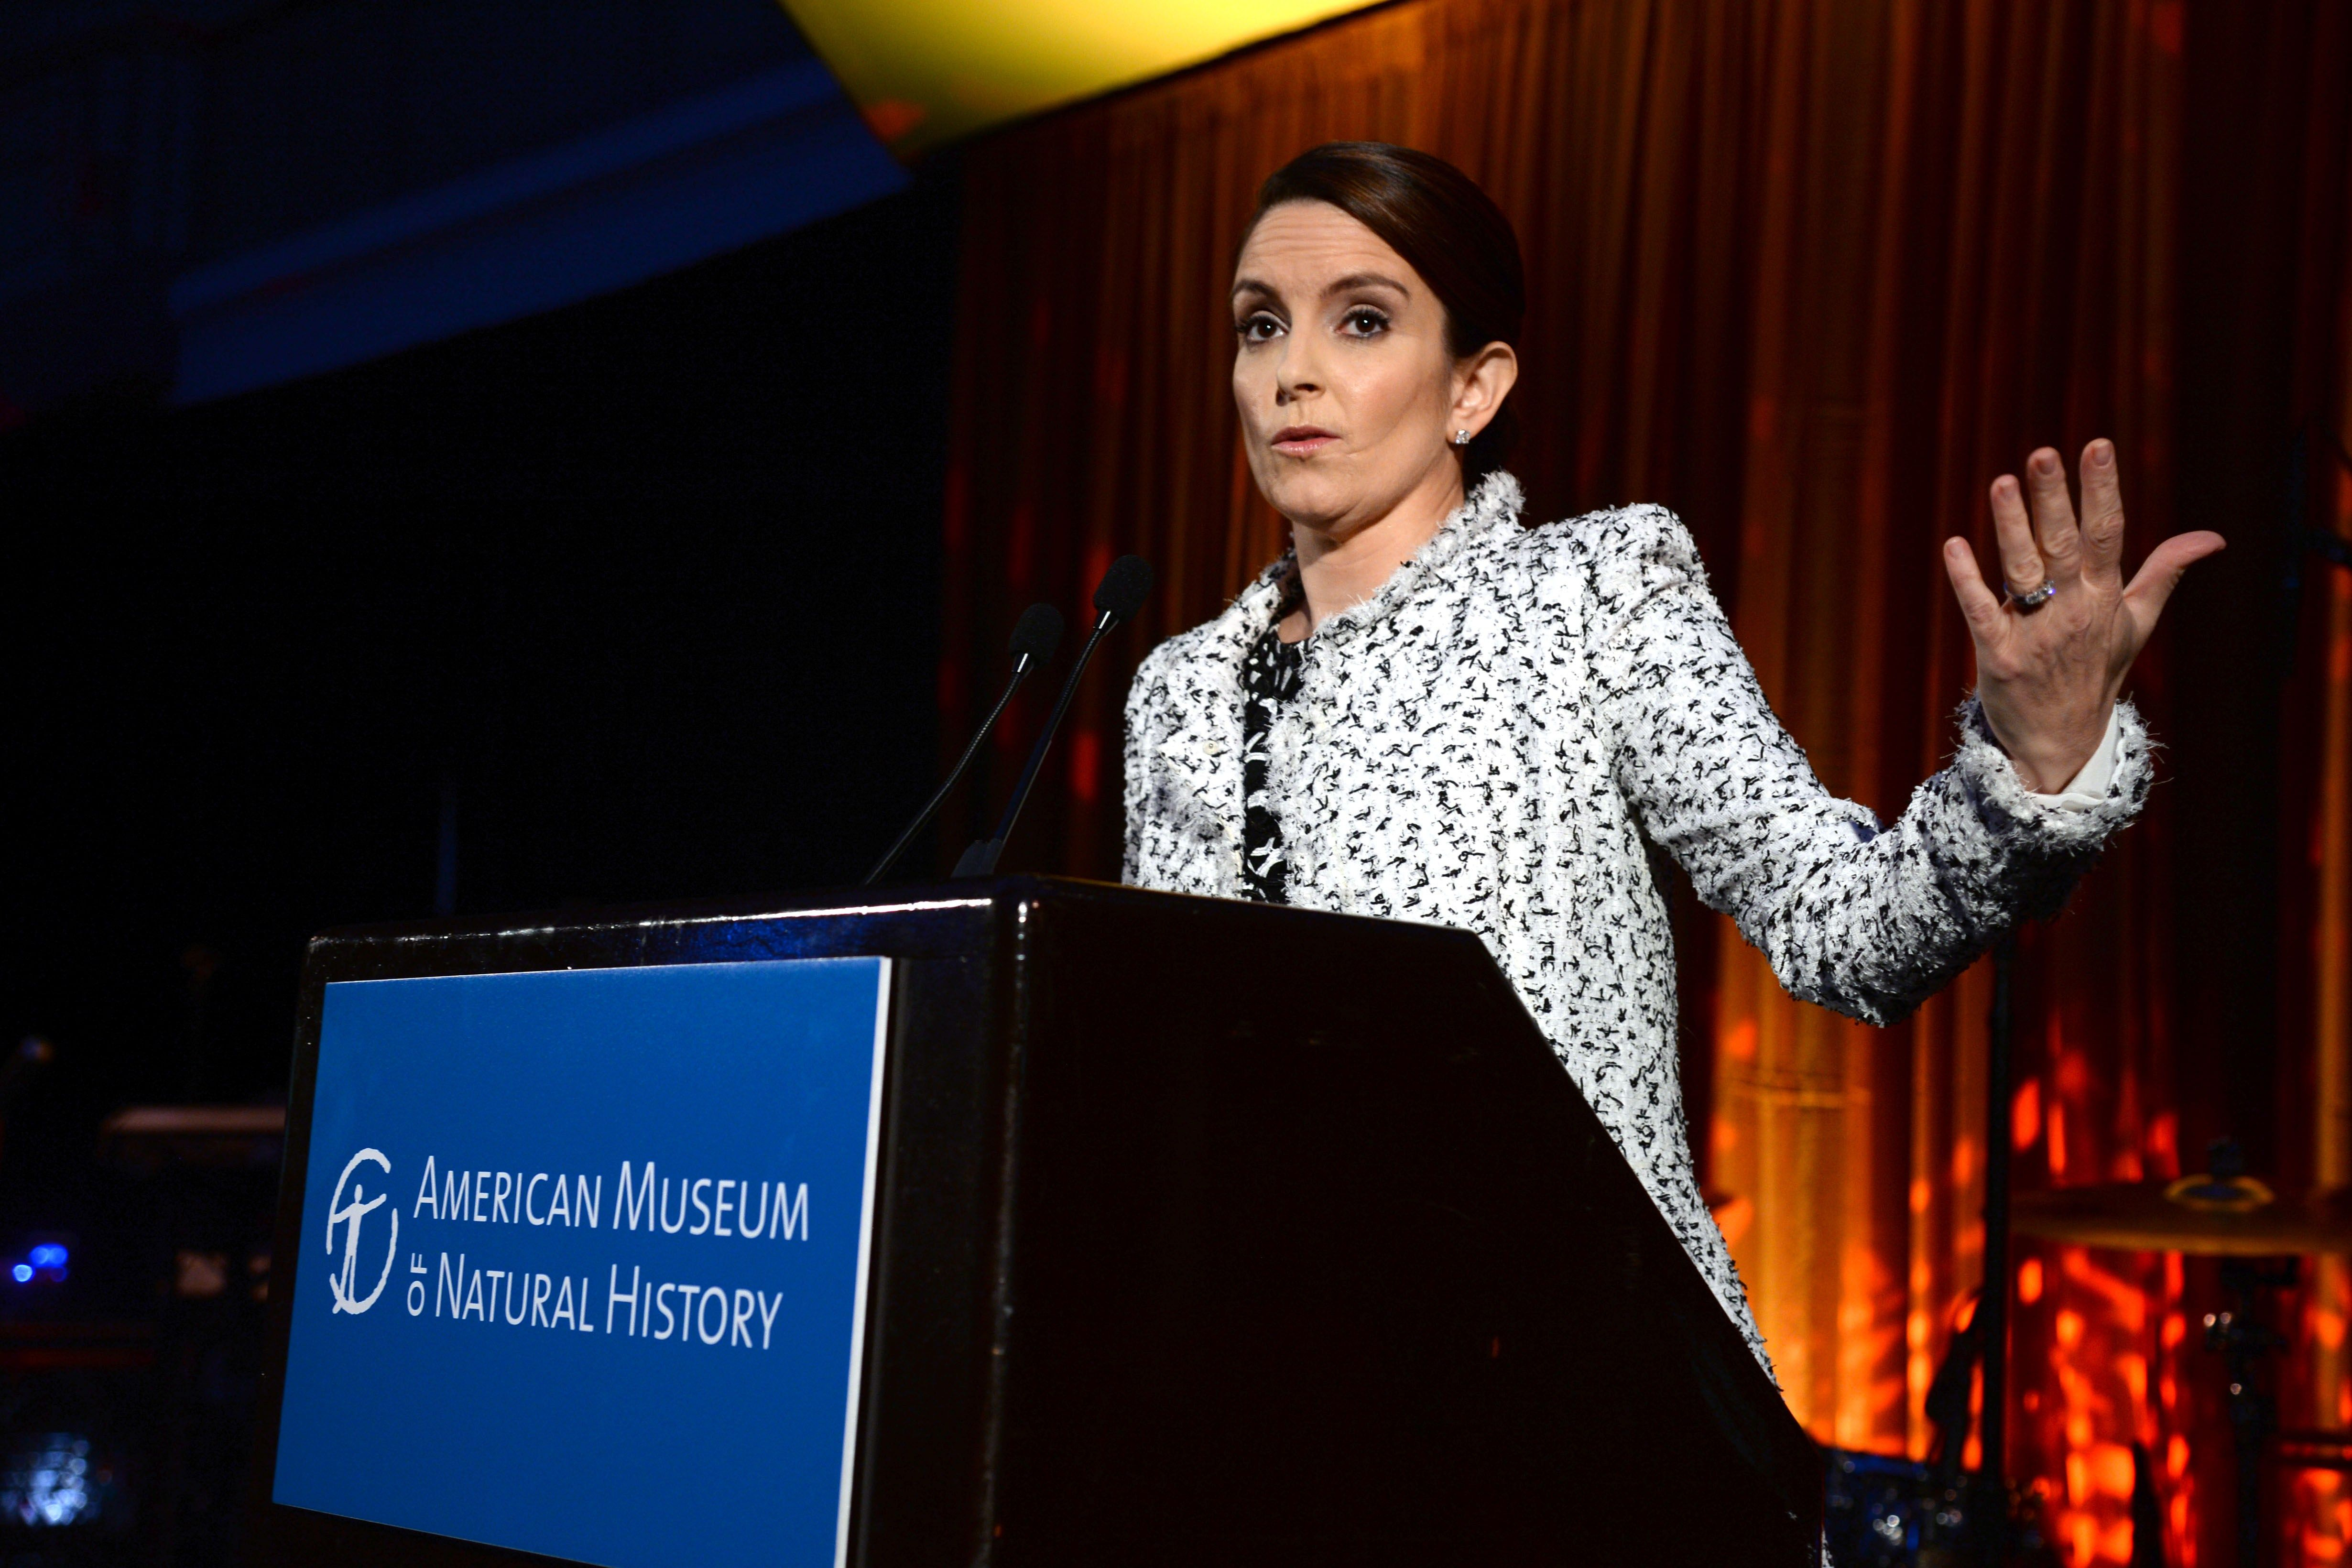 I just need to get something off my chest: No one wears a jacket like Tina Fey. God bless. *slow, resounding applause*